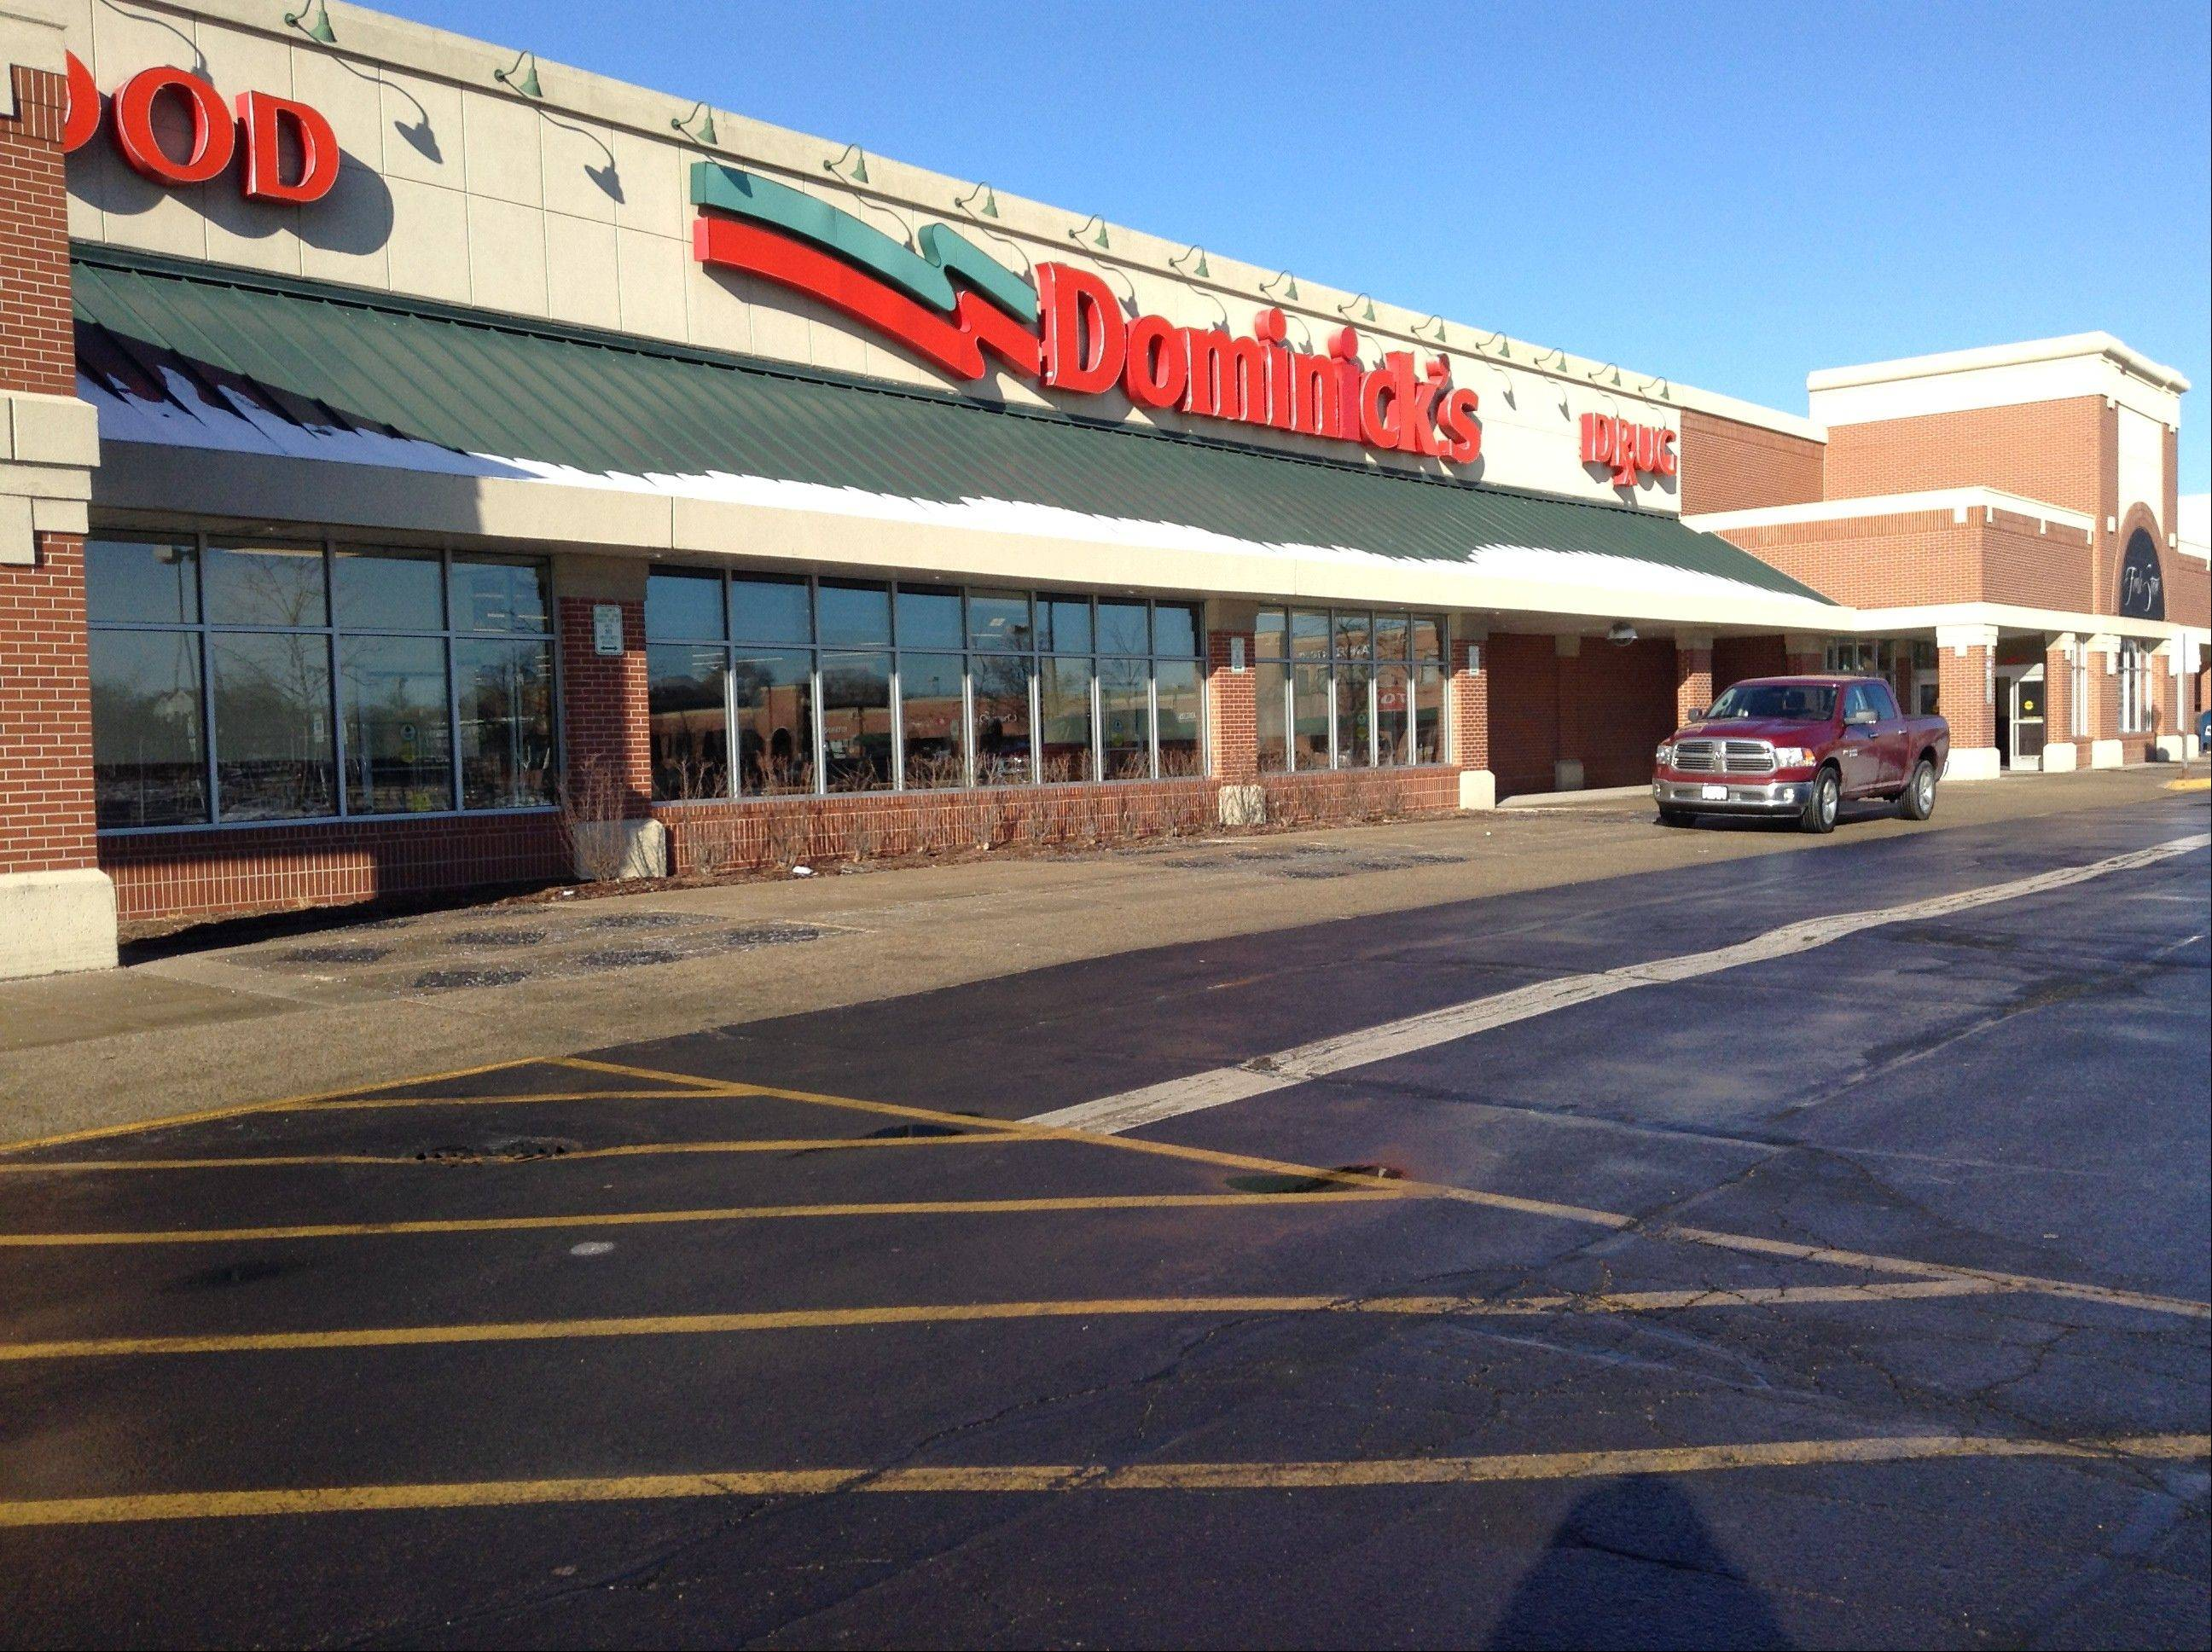 As Dominick's closes, employees, customers reminisce